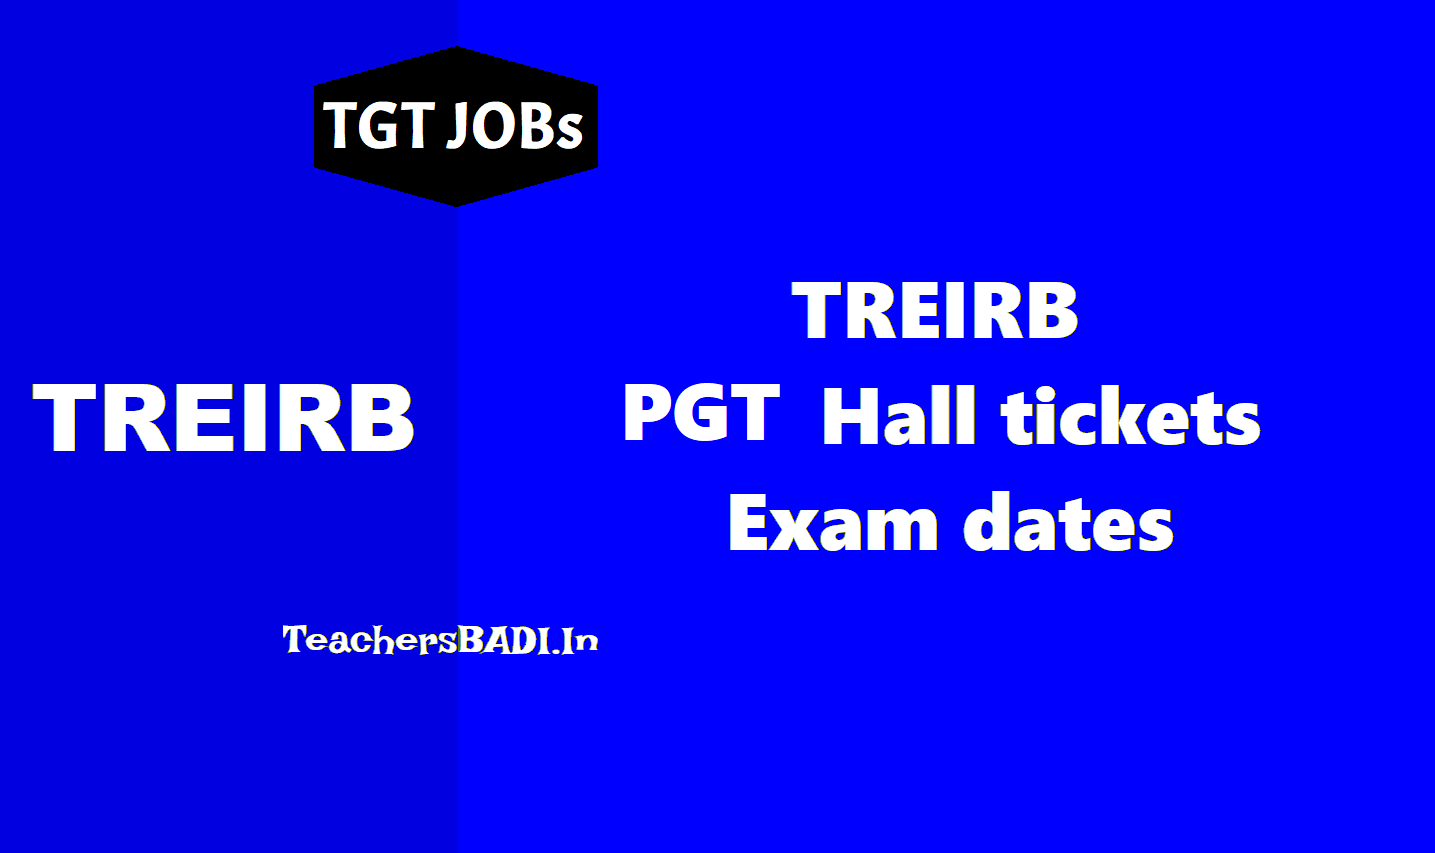 treirb pgt hall tickets 2018 download,pgt exam dates,ts residential recruitment pgt hall tickets 2018,treirb pgt answer key,treirb pgt results,treirb pgt selection list